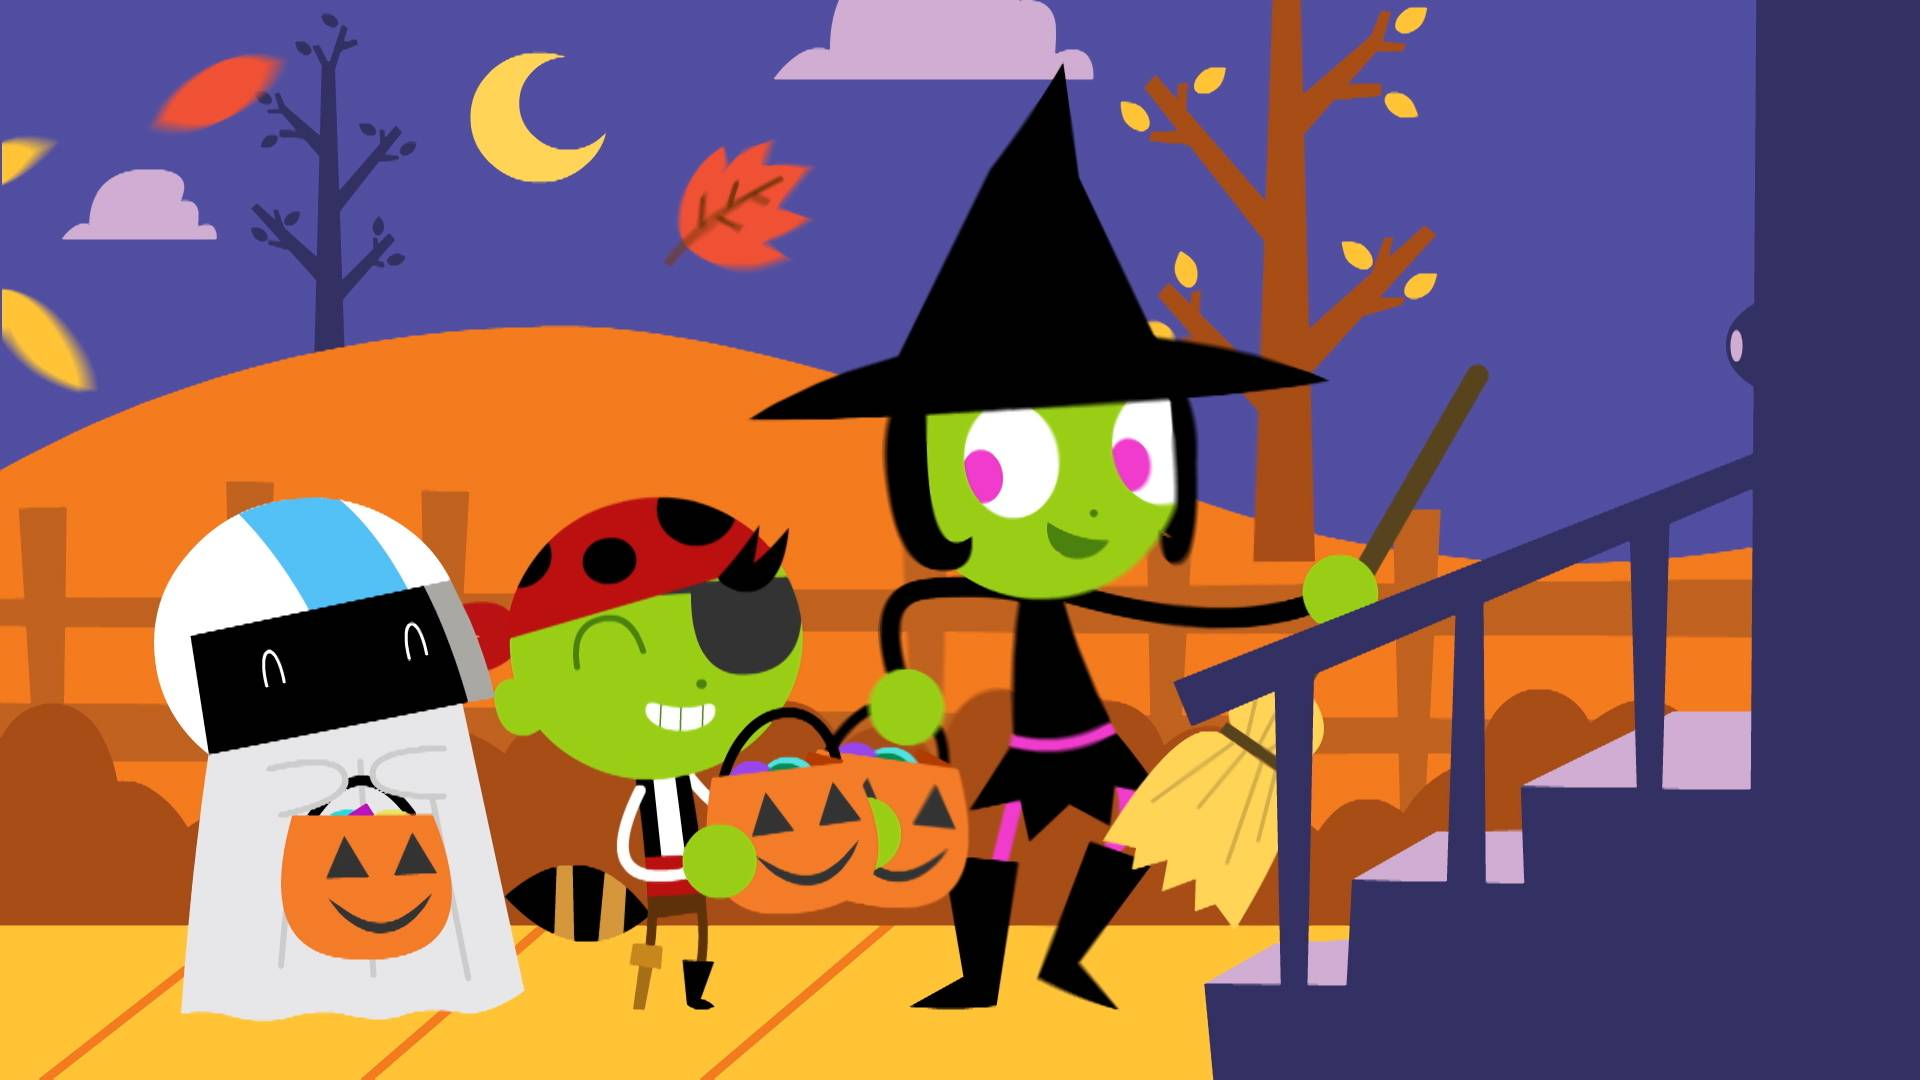 Kentucky Fall Wallpaper 2017 Pbs Kids Announces New Halloween Programming